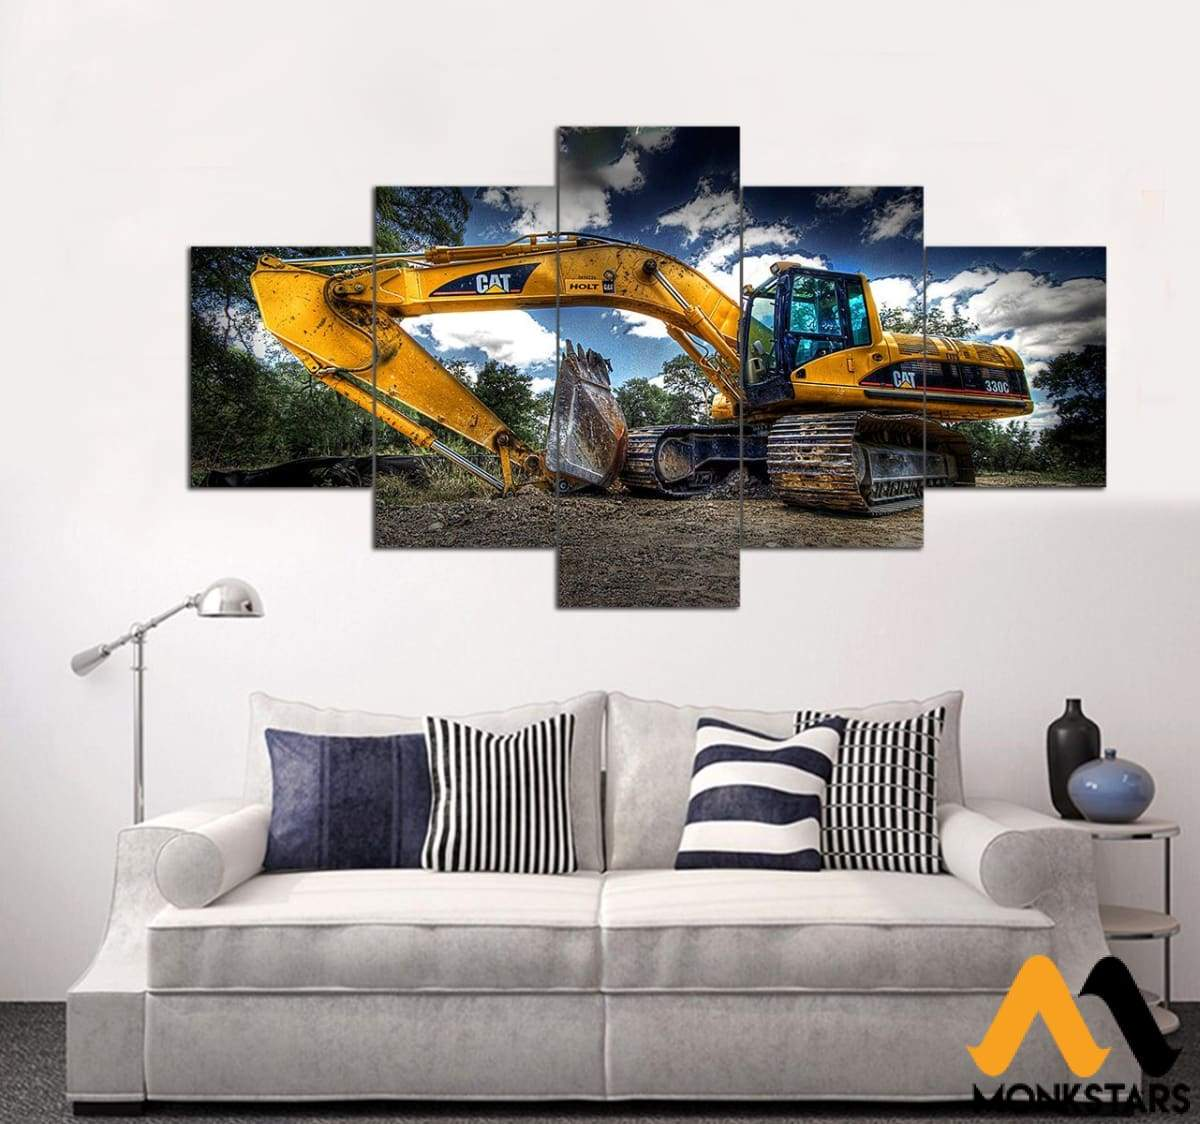 5-Piece Excavator Printed Canvas Wall Art Scgl070511 Painting & Calligraphy